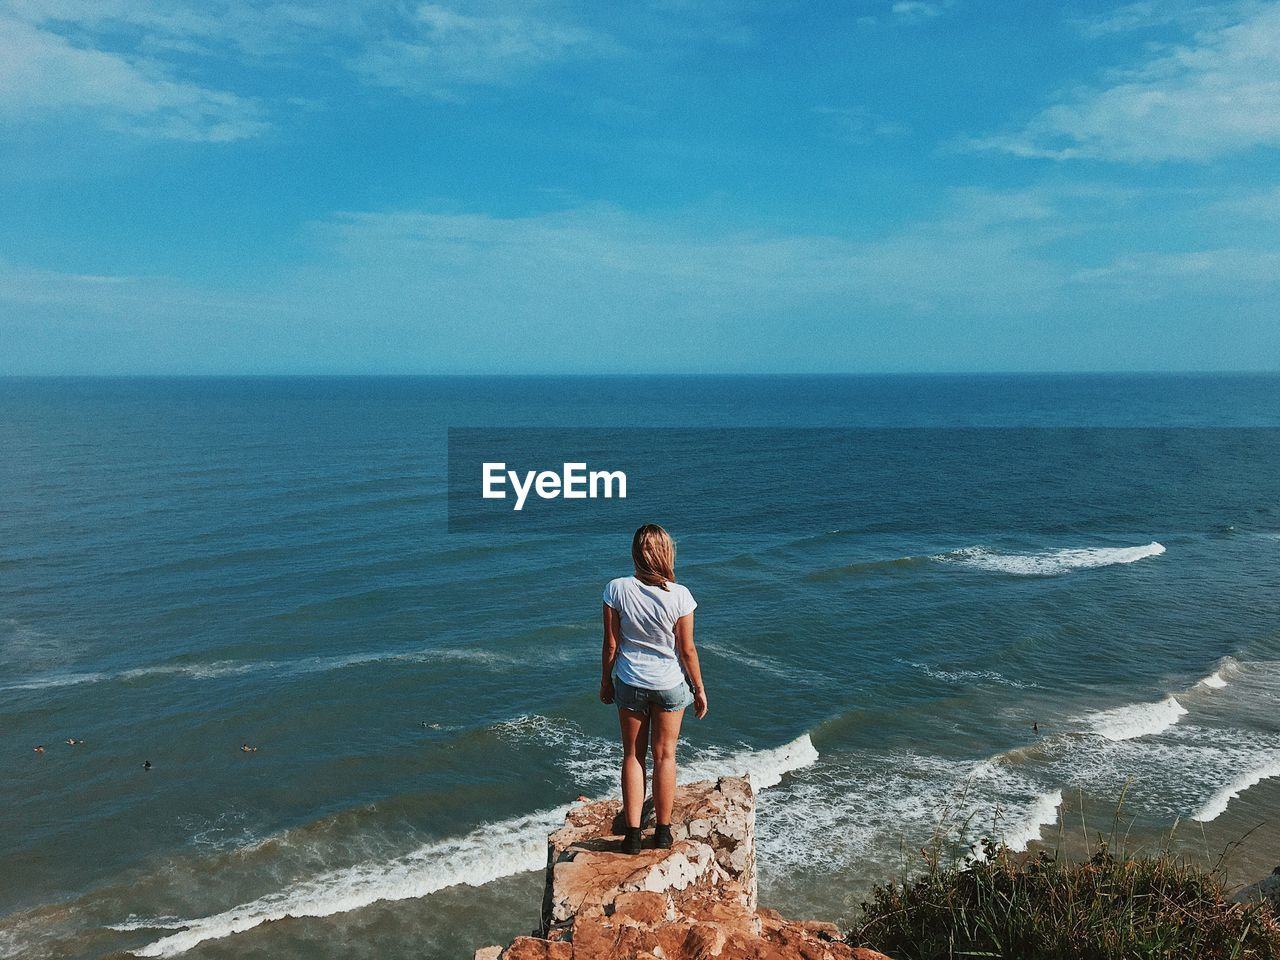 sea, horizon over water, water, nature, standing, real people, scenics, sky, one person, beauty in nature, leisure activity, full length, tranquil scene, day, outdoors, rear view, casual clothing, tranquility, lifestyles, young adult, vacations, beach, blue, wave, young women